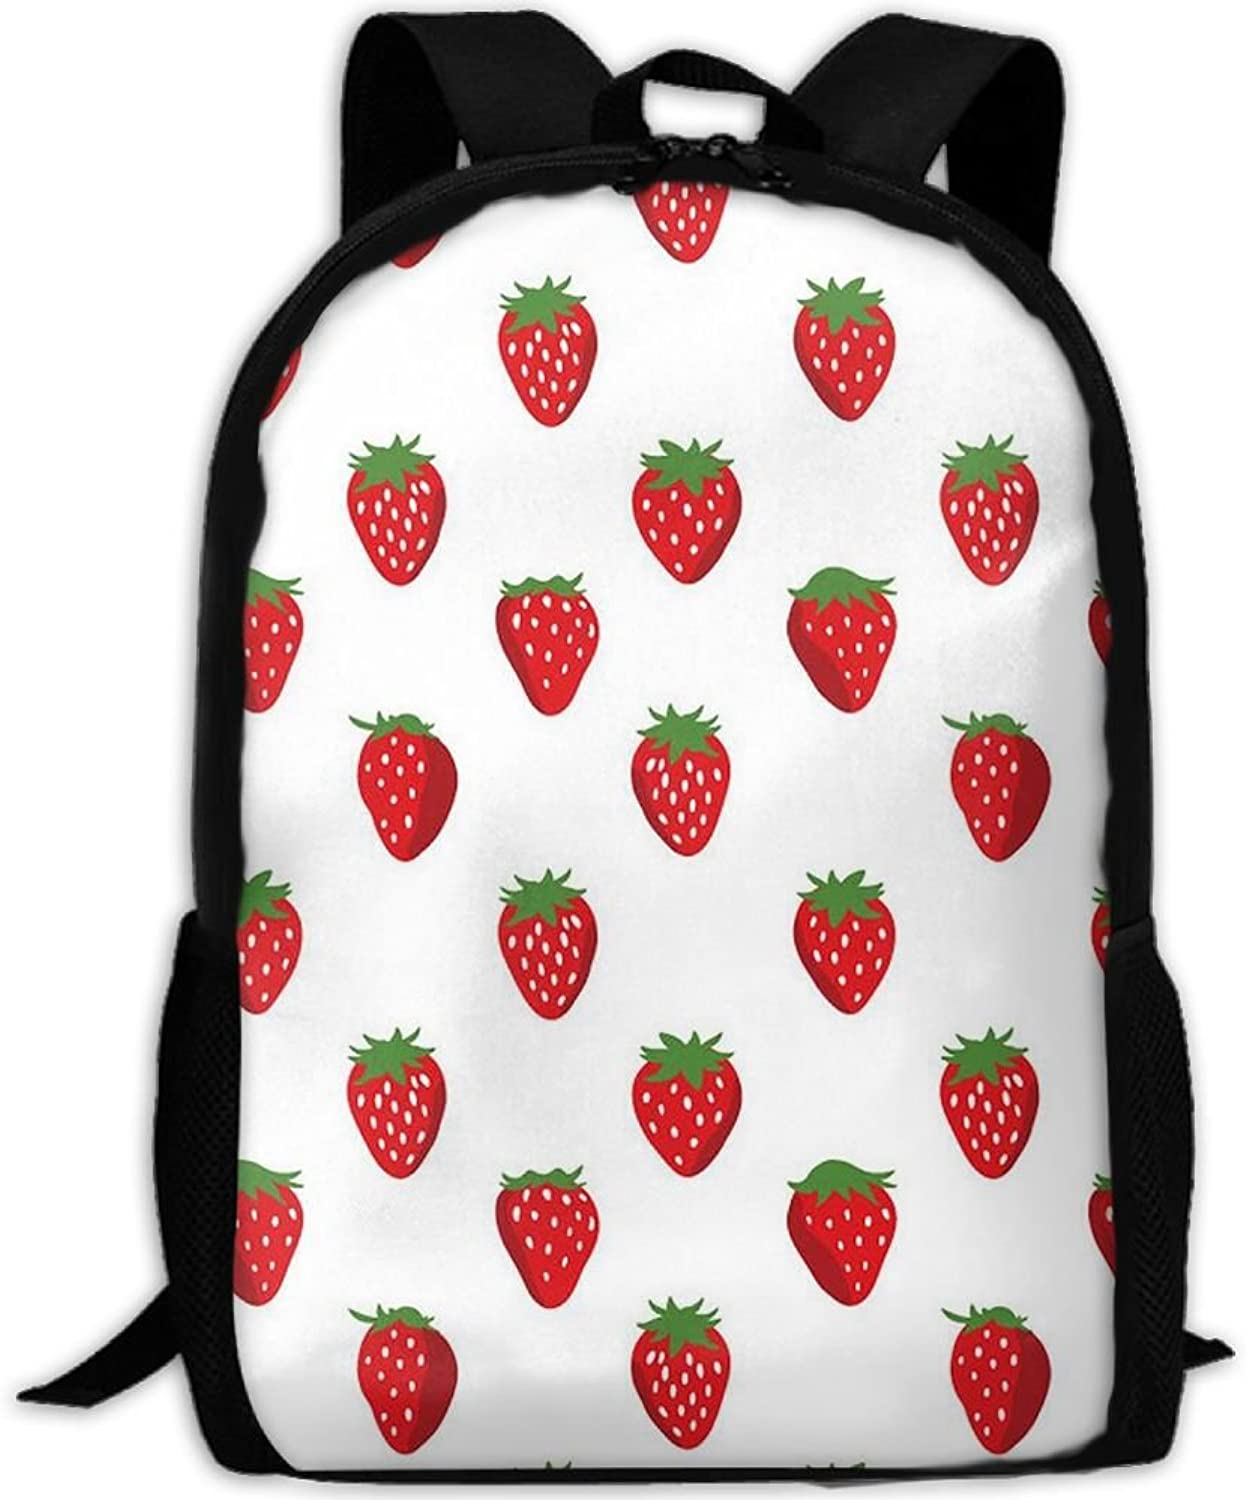 Adult Backpack Fresh Strawberry College Daypack Oxford Bag Unisex Business Travel Sports Bag with Adjustable Strap